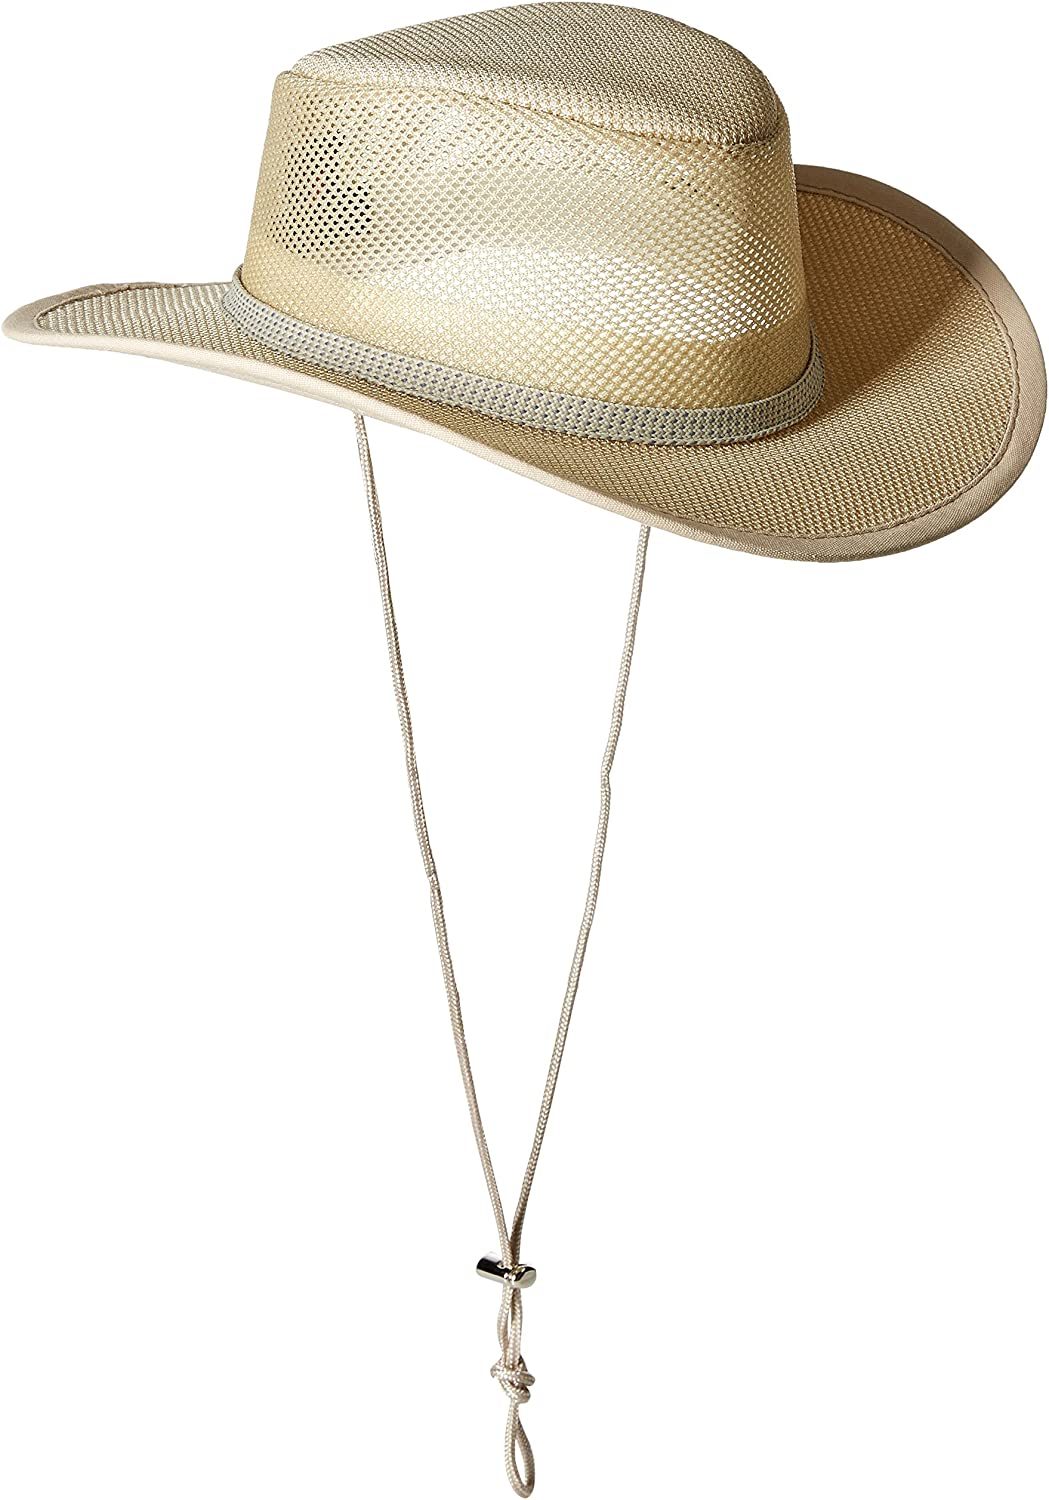 Directly managed store Stetson 1 year warranty Men's Mesh Hat Covered